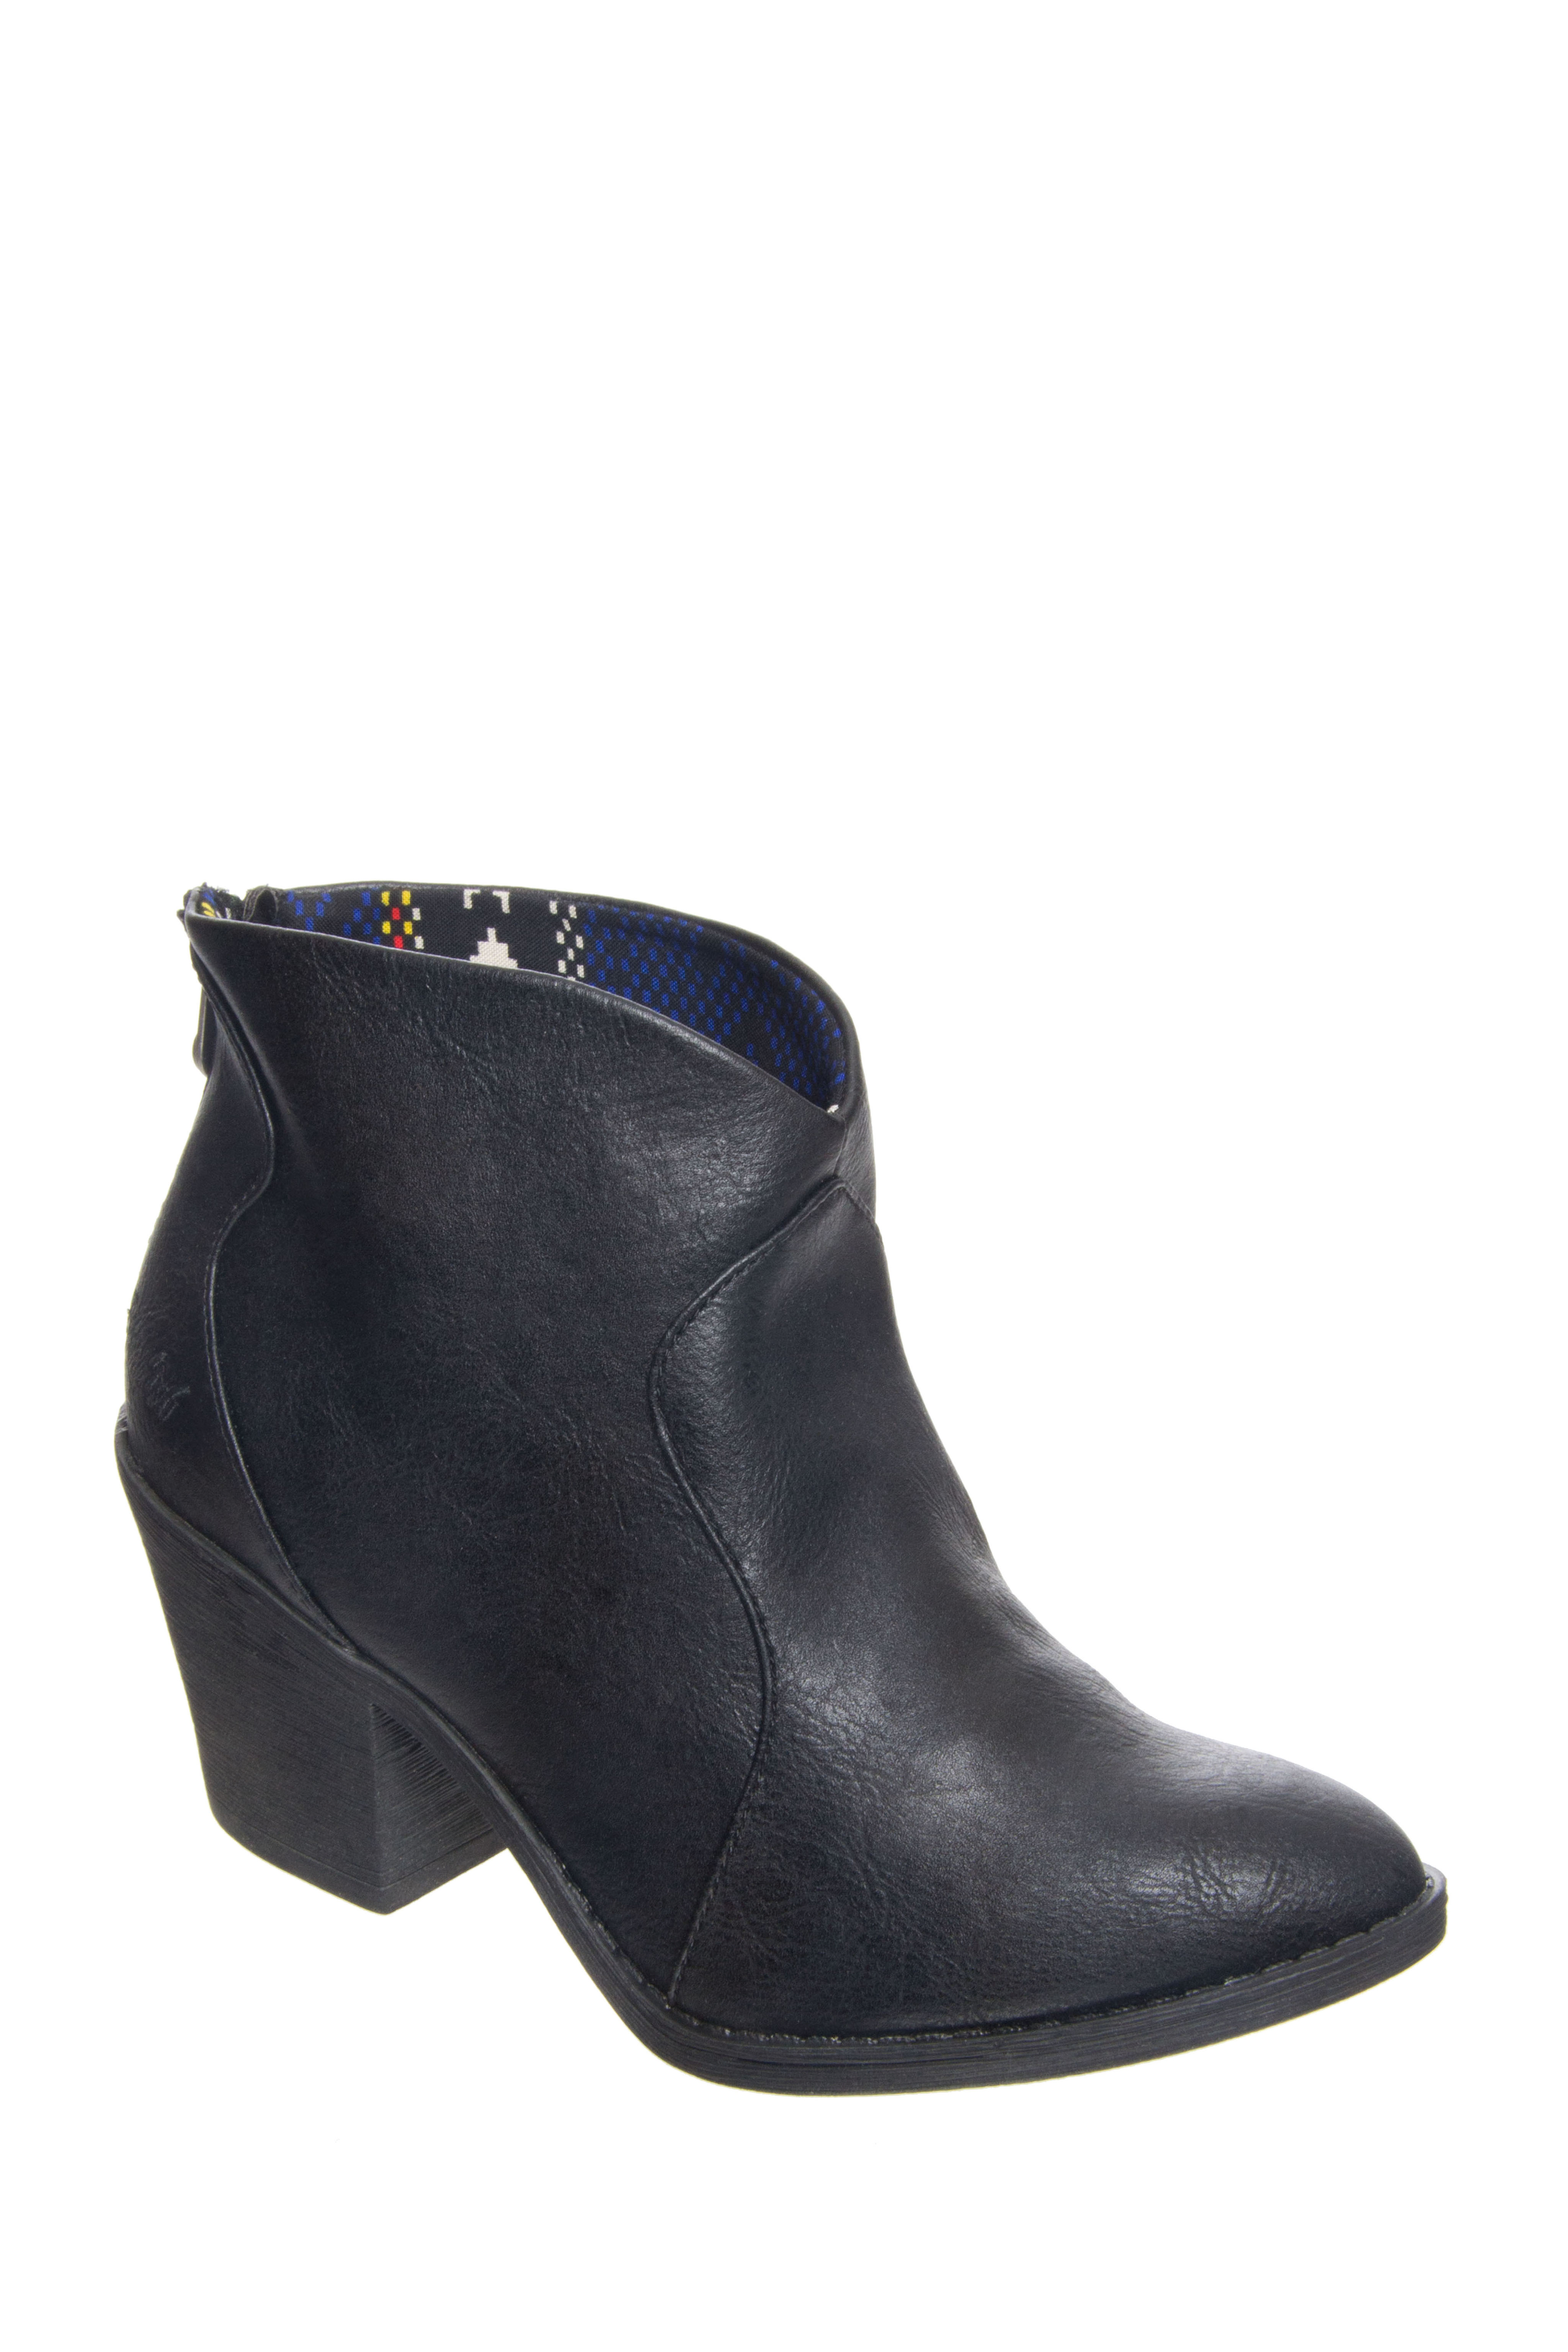 Blowfish Schloss Mid Heel Booties - Black Old Ranger